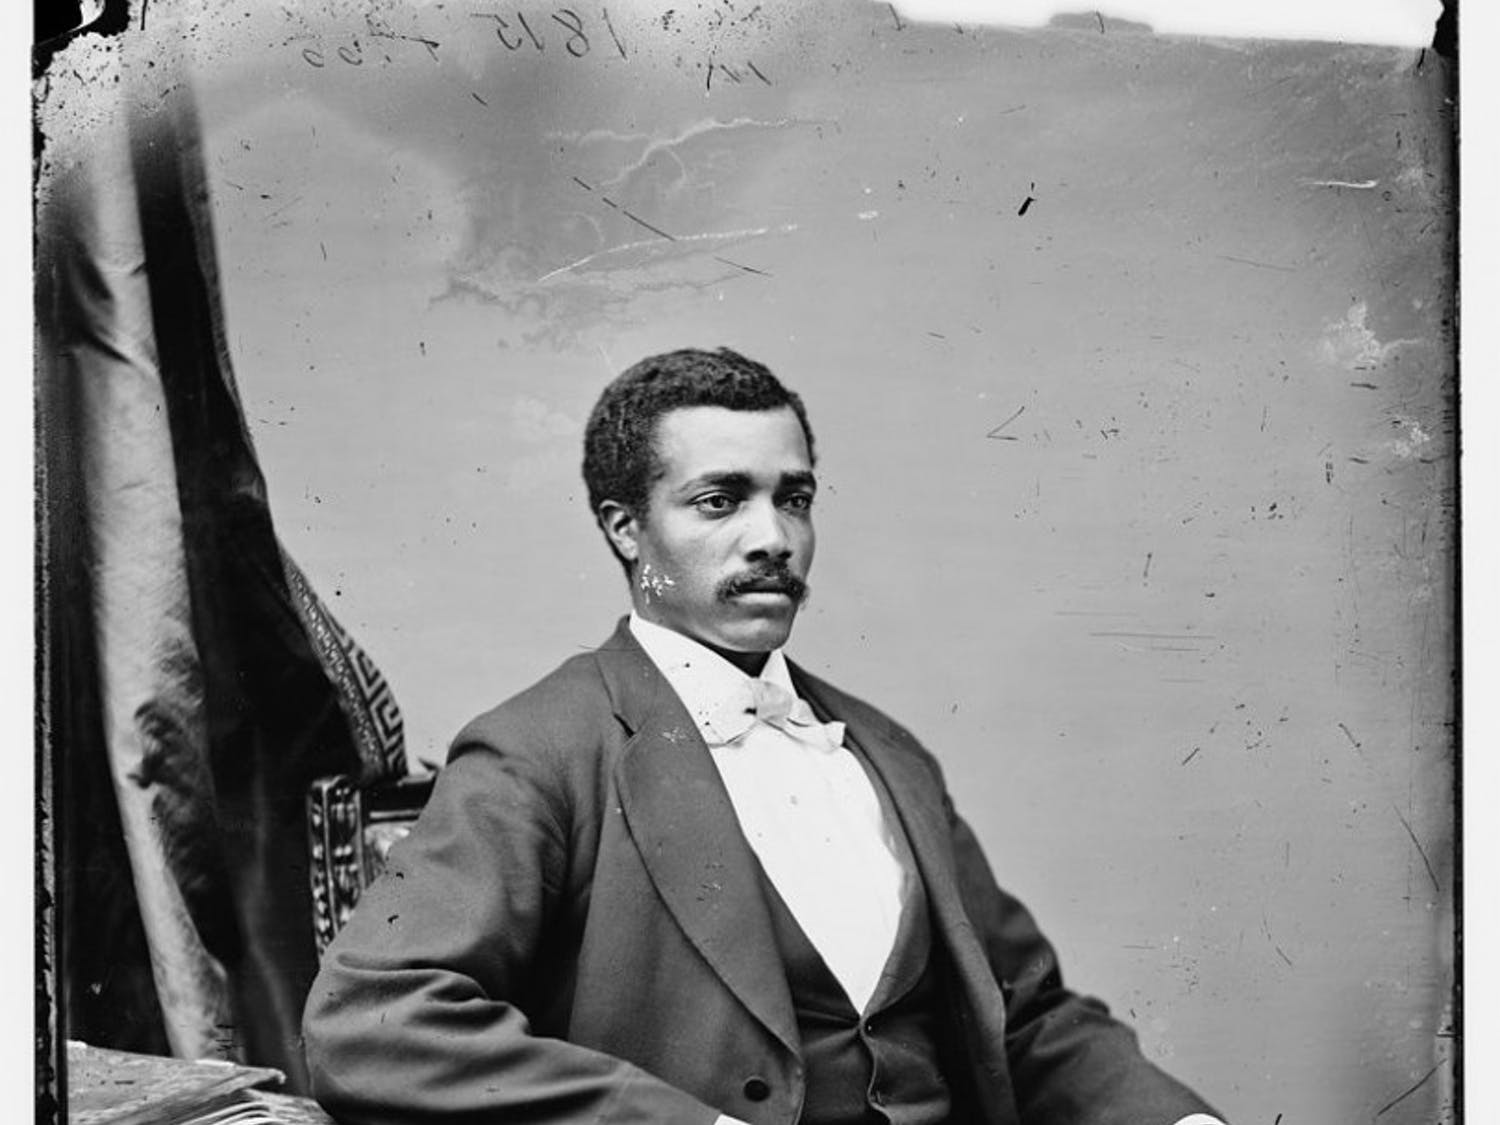 Josiah T. Walls, 1842-1905, was Florida's first African American representative. He is the only person in Alachua County's history to serve as the Gainesville mayor, a county commissioner, a school board member, a state senator and a U.S. congressman.